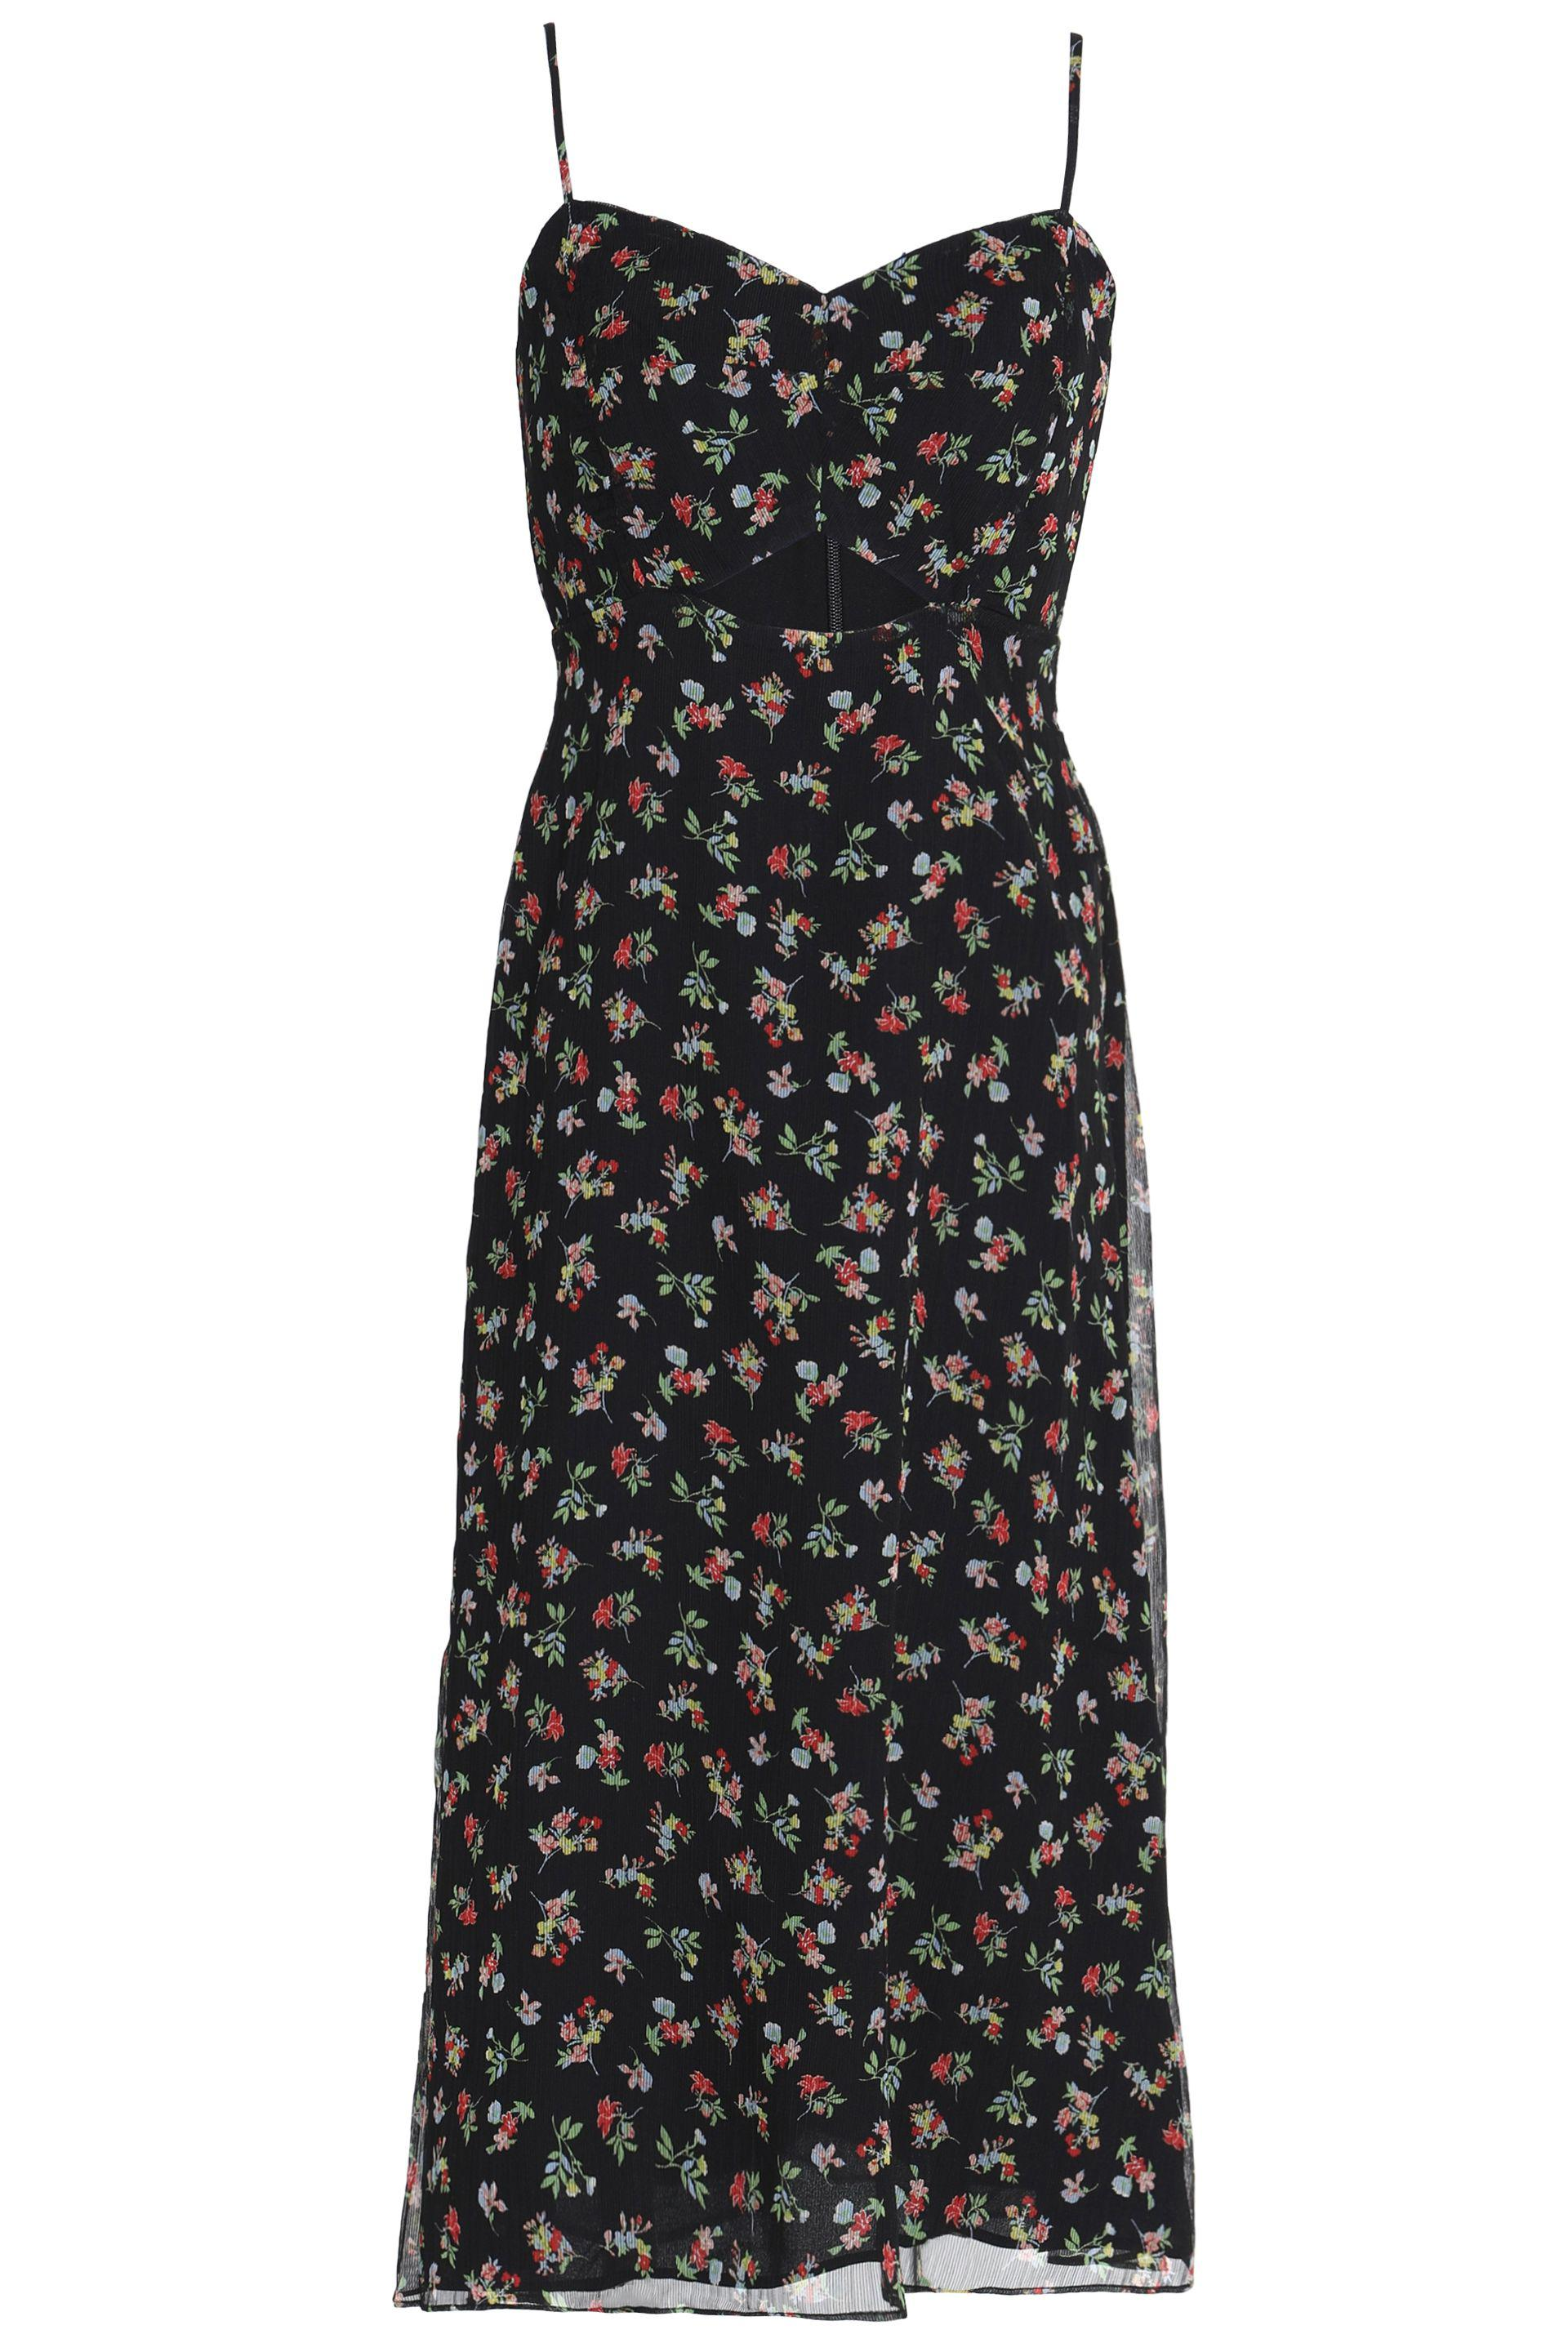 Bailey 44 Woman Cutout Floral-print Chiffon Midi Dress Black Size 4 Bailey 44 Buy Cheap Choice Buy Cheap Release Dates Cheapest Price For Sale Free Shipping Best Store To Get Free Shipping Original WyztFaDzU